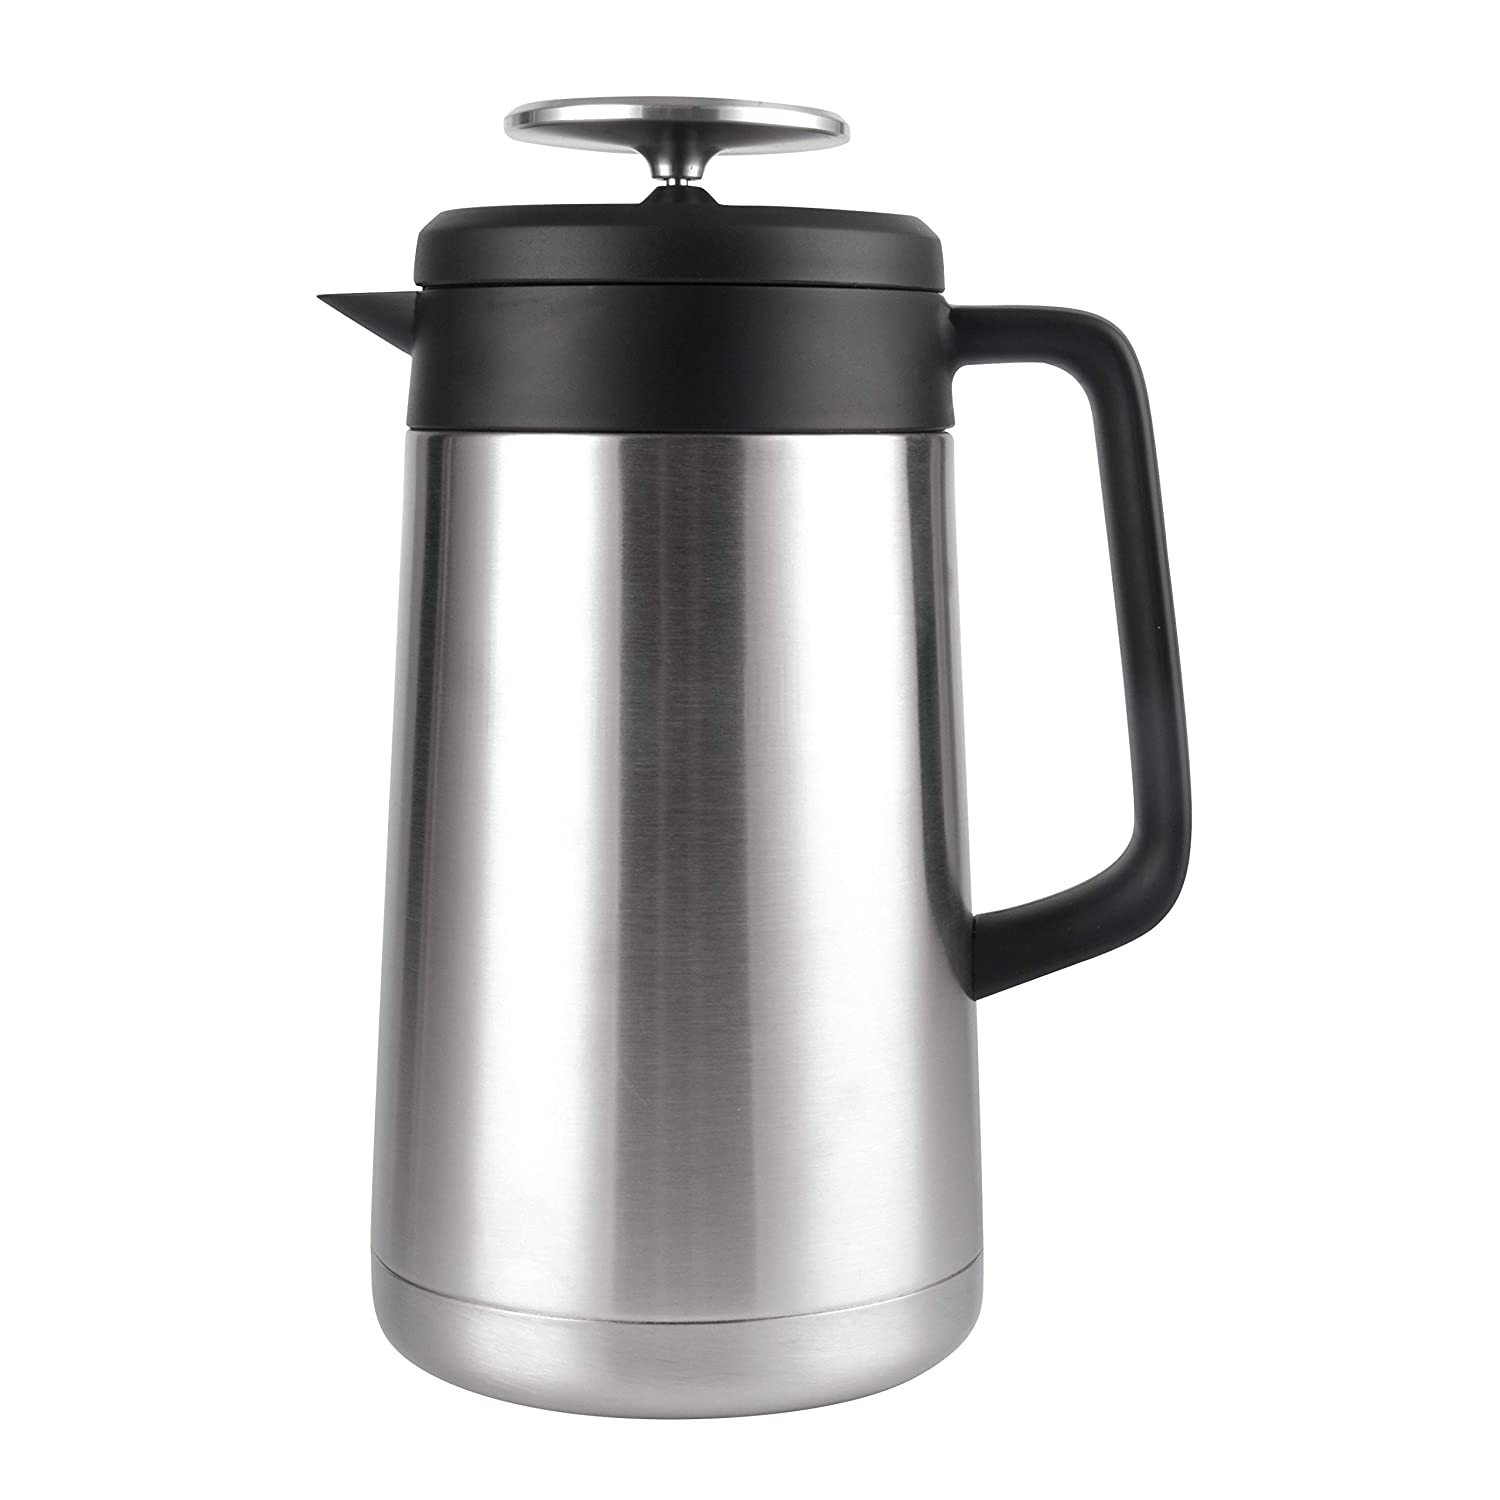 Stainless Steel French Press Coffee Maker 34 oz – No More Wasted Premium Coffee Maximum Heat Retention, Double Wall, Thermal Insulated. Large Coffee Press Pot – For Tea Lover s too – Cresimo